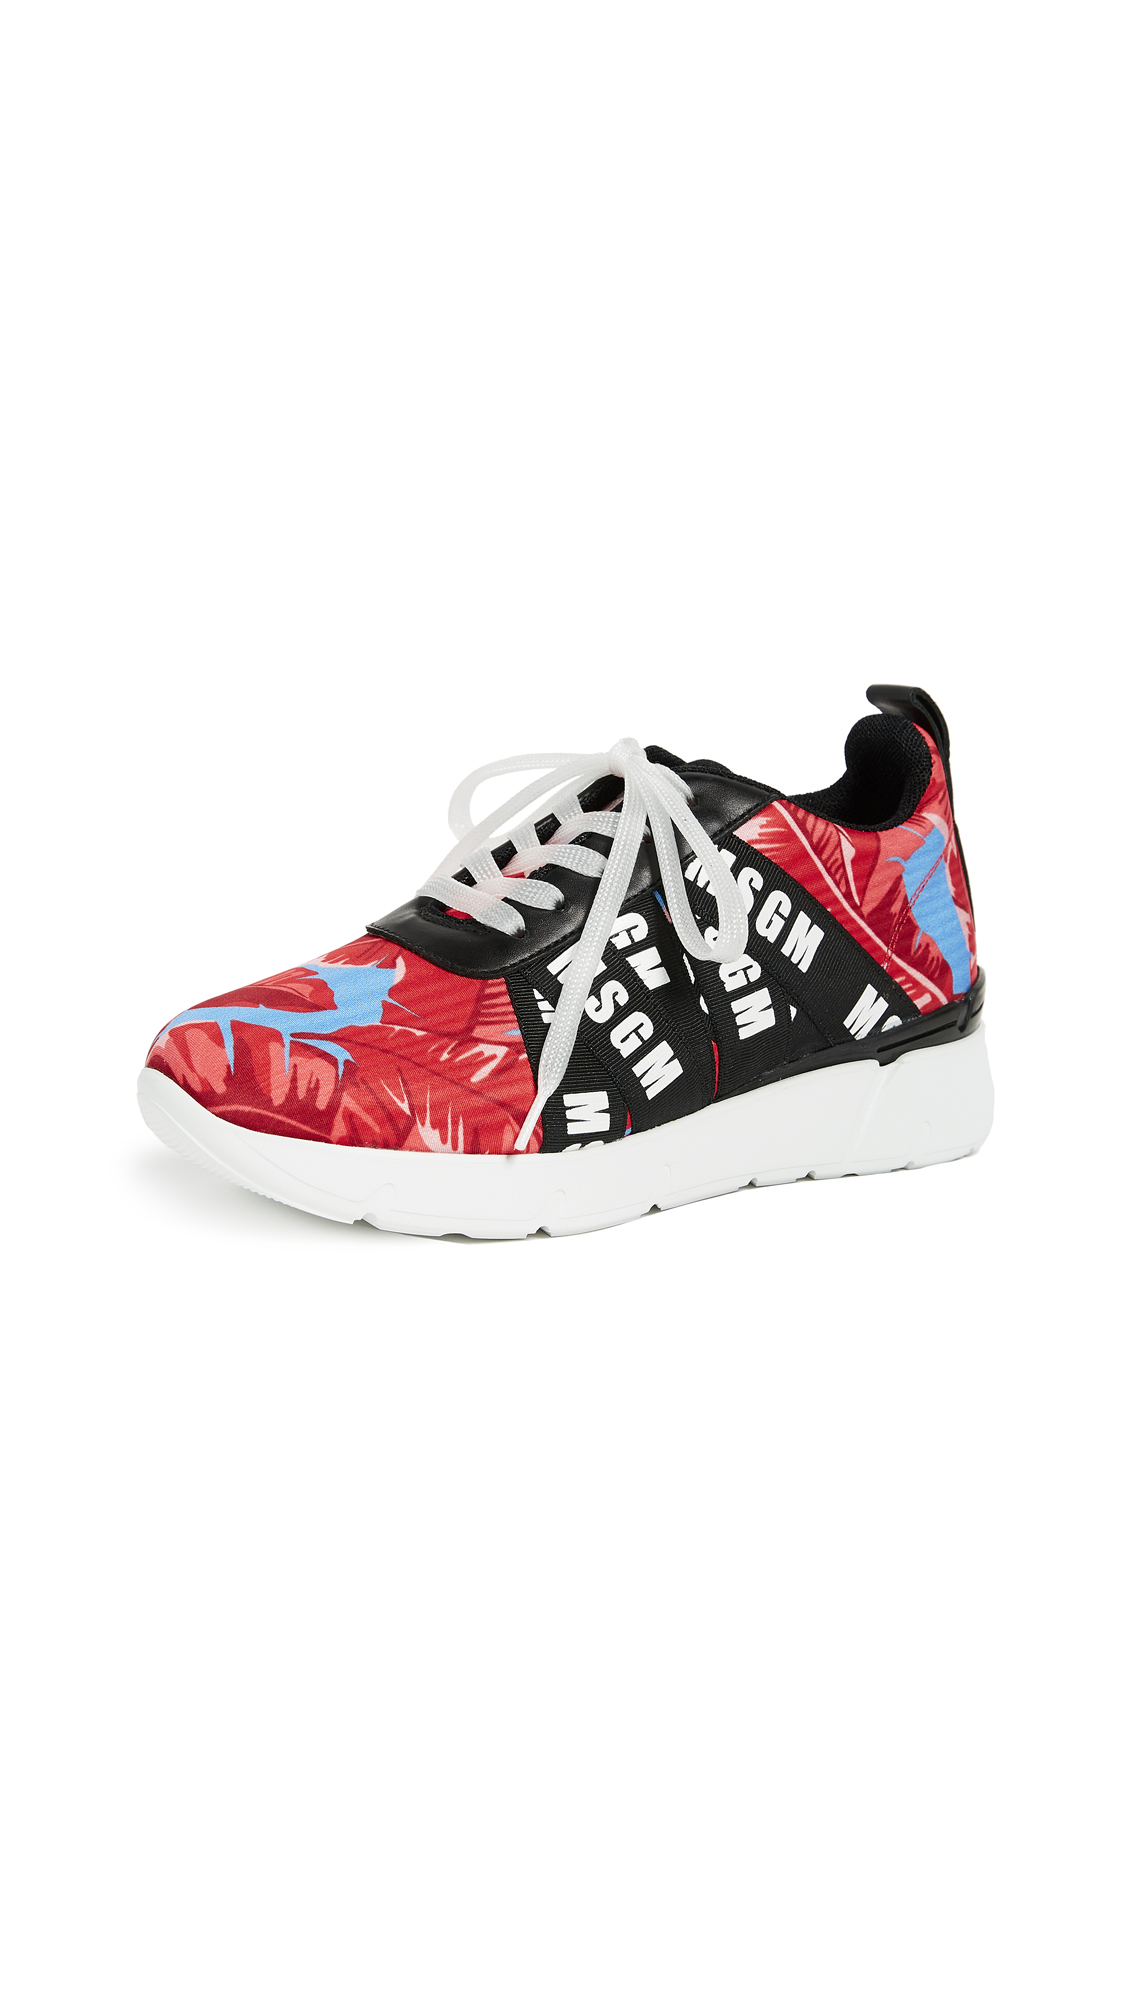 MSGM Multi Strap Runner Sneakers - Black/Leaf Print